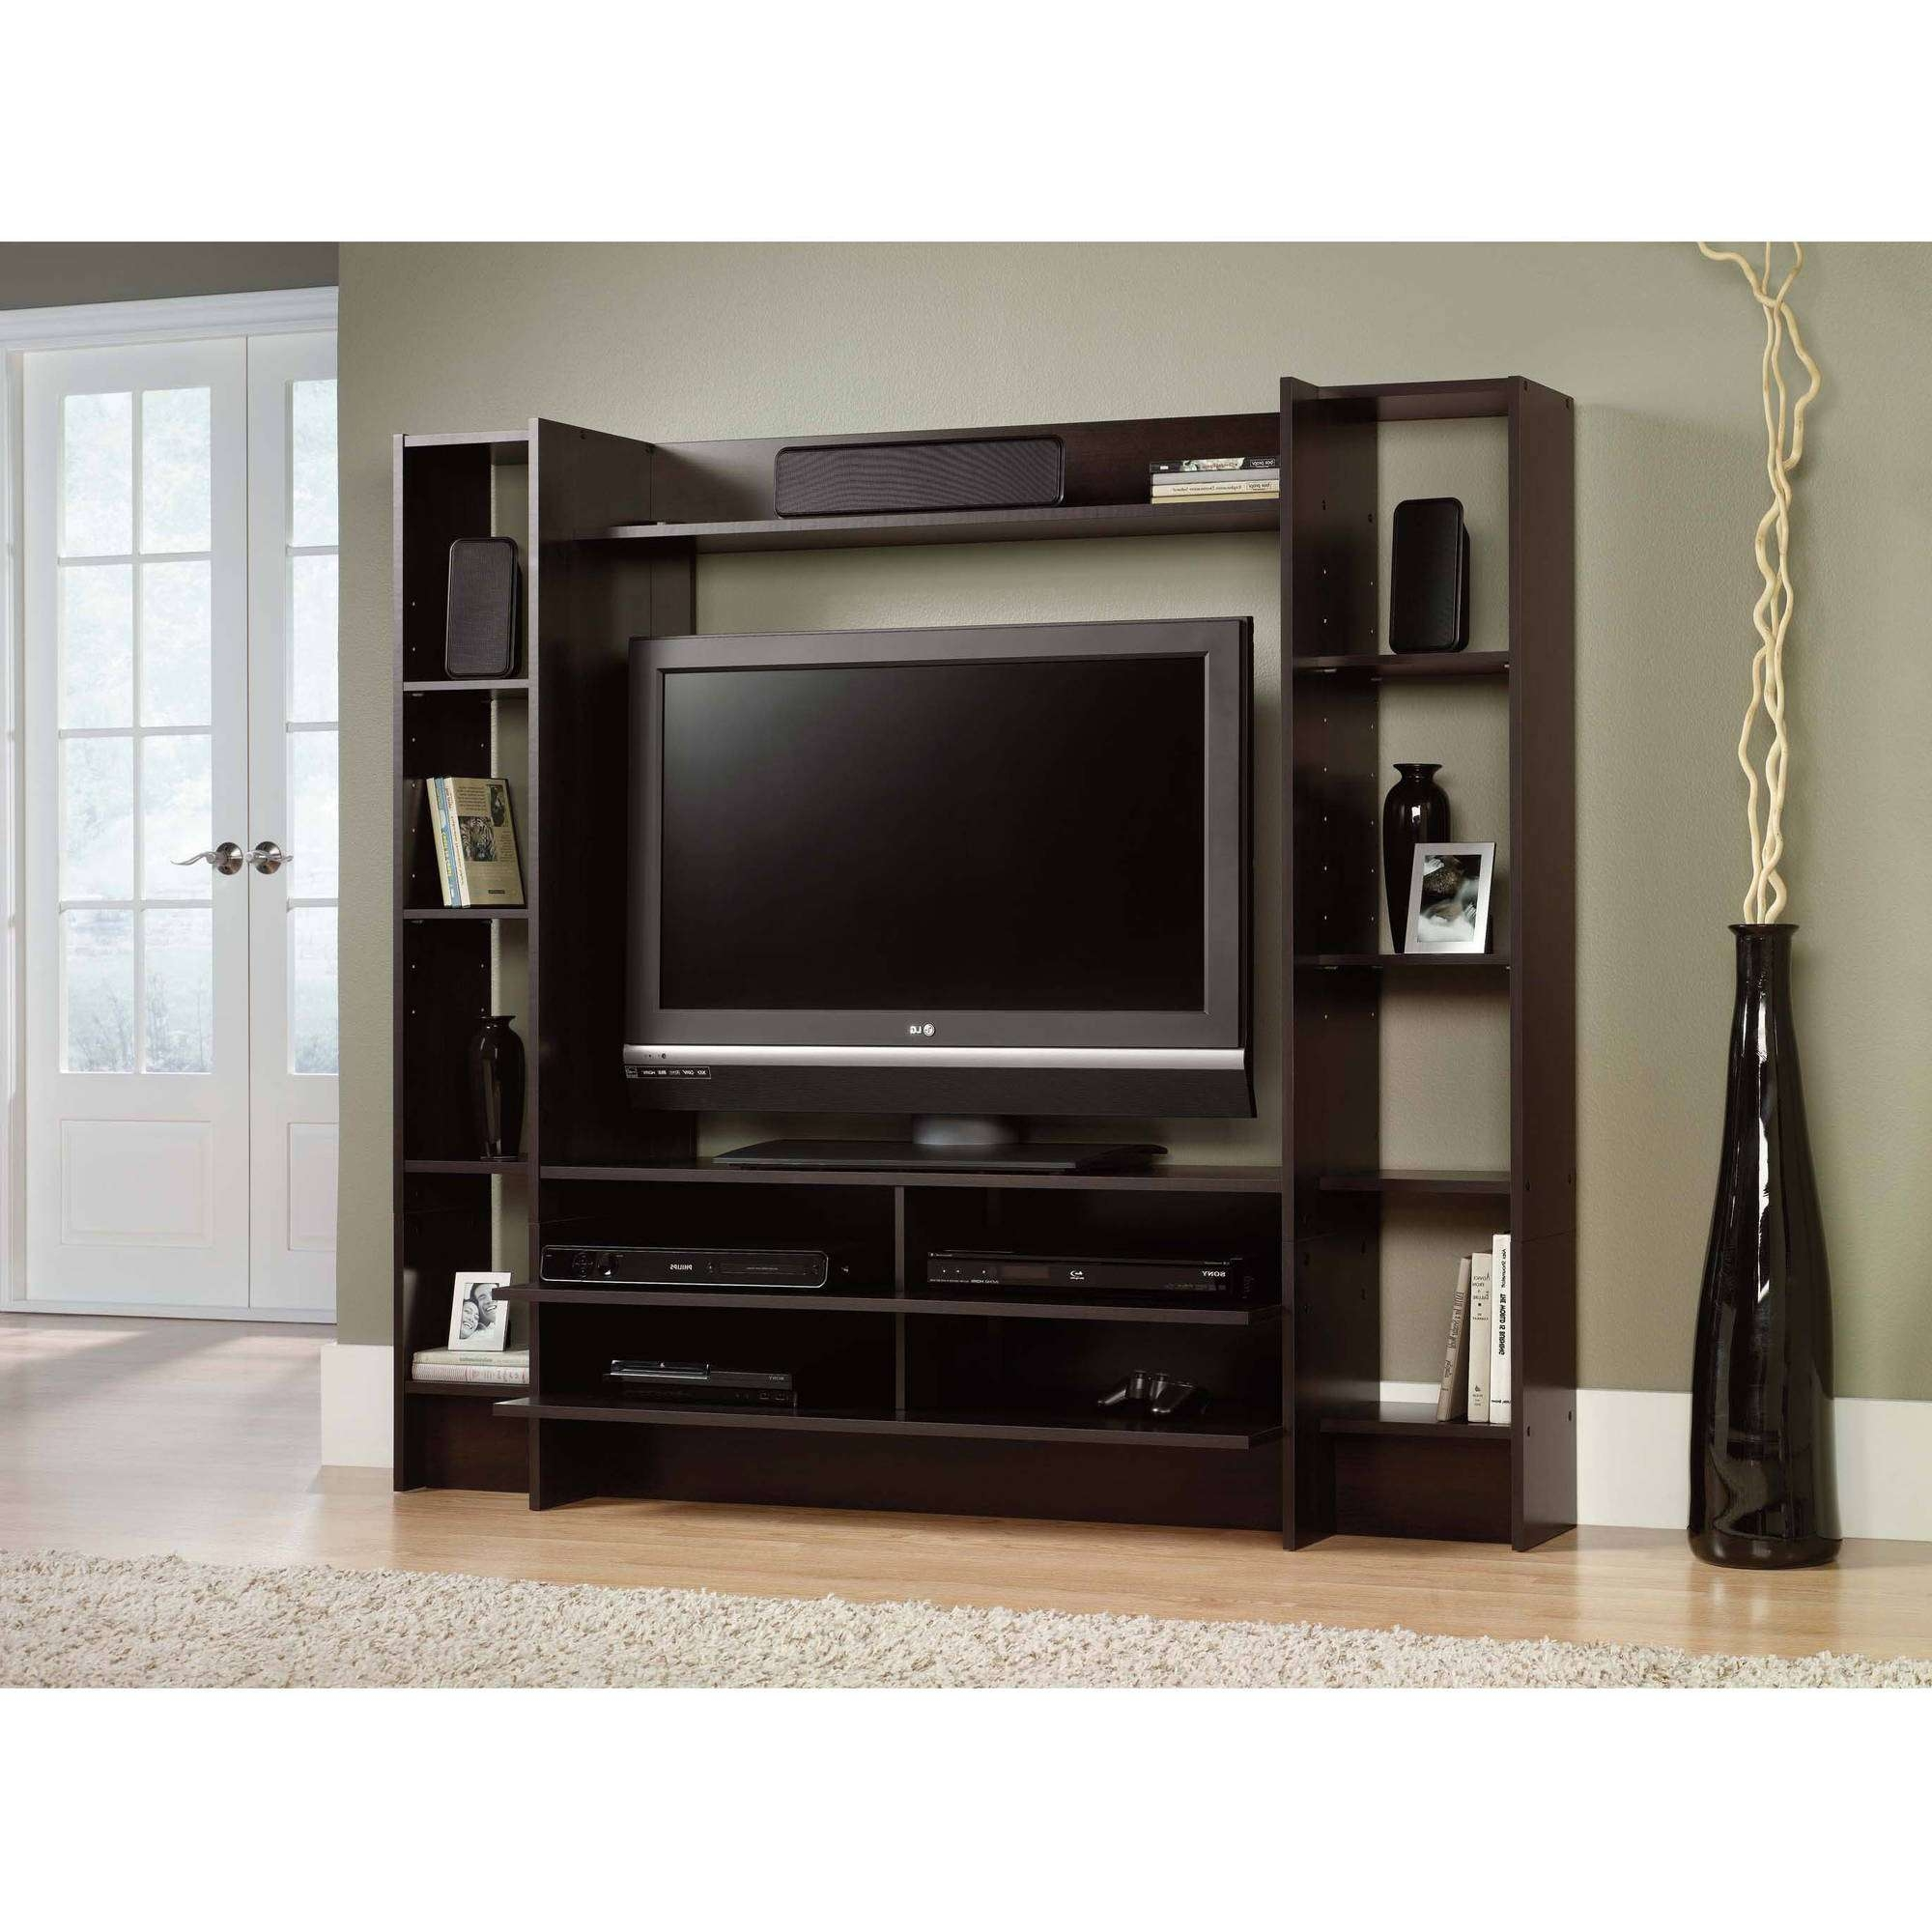 Tv Stands & Entertainment Centers – Walmart Pertaining To Tv Cabinets With Storage (View 3 of 20)